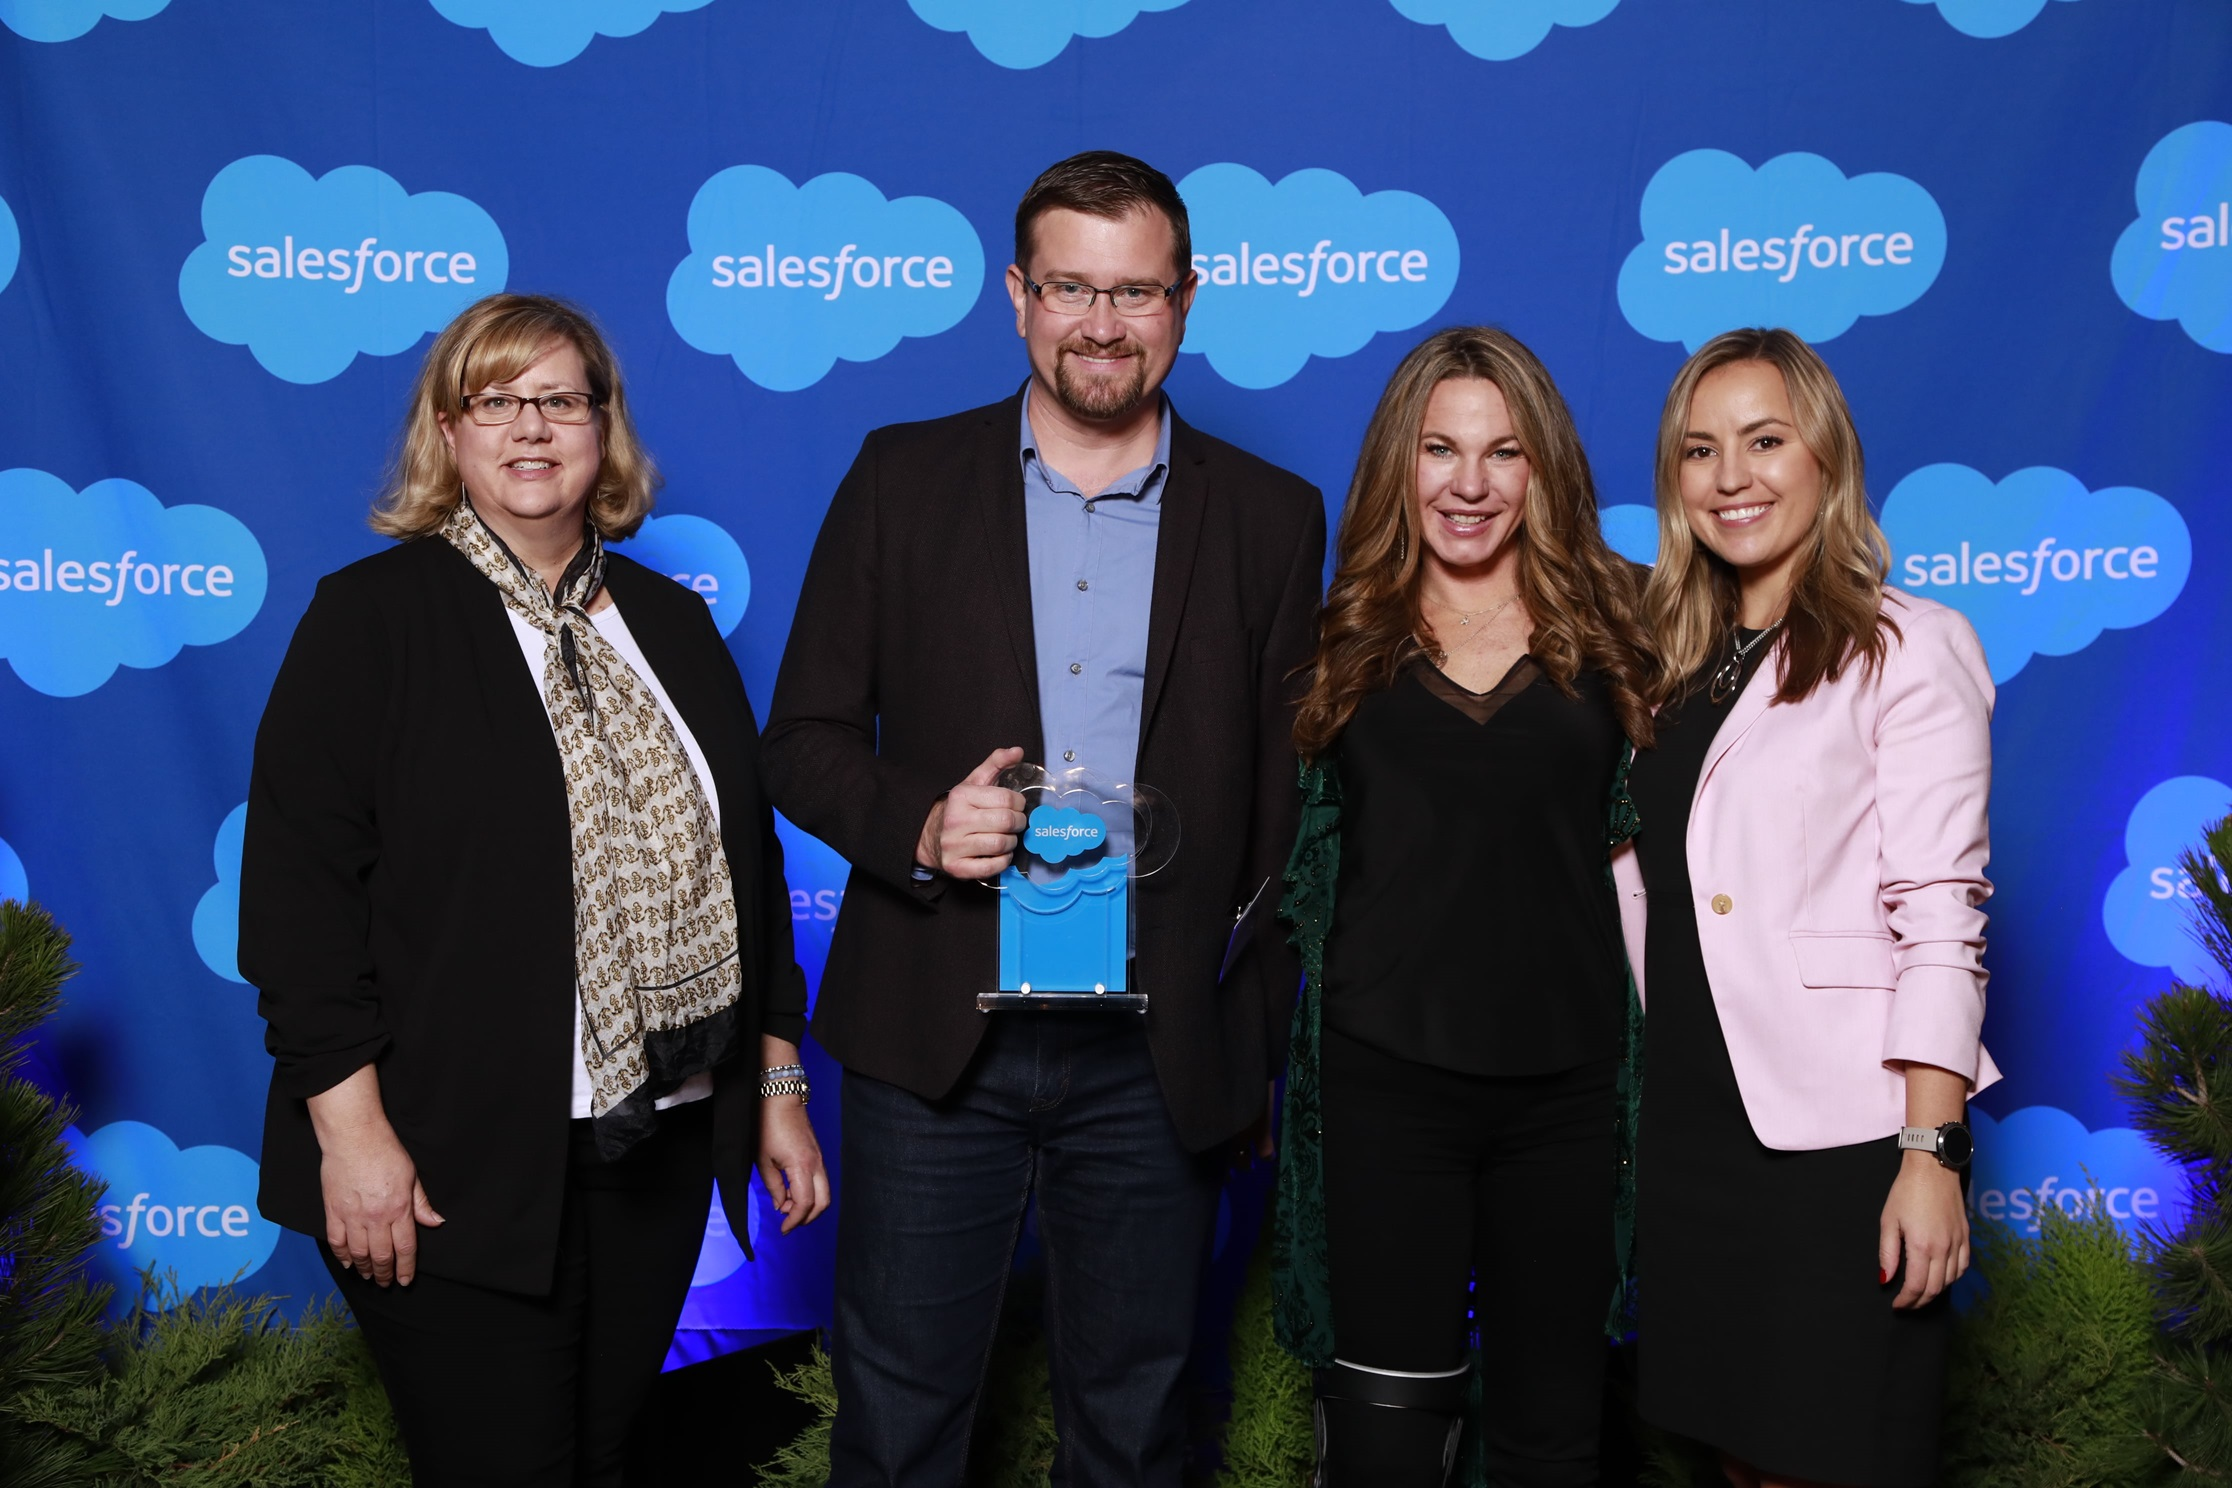 Salesforce Innovation Awards